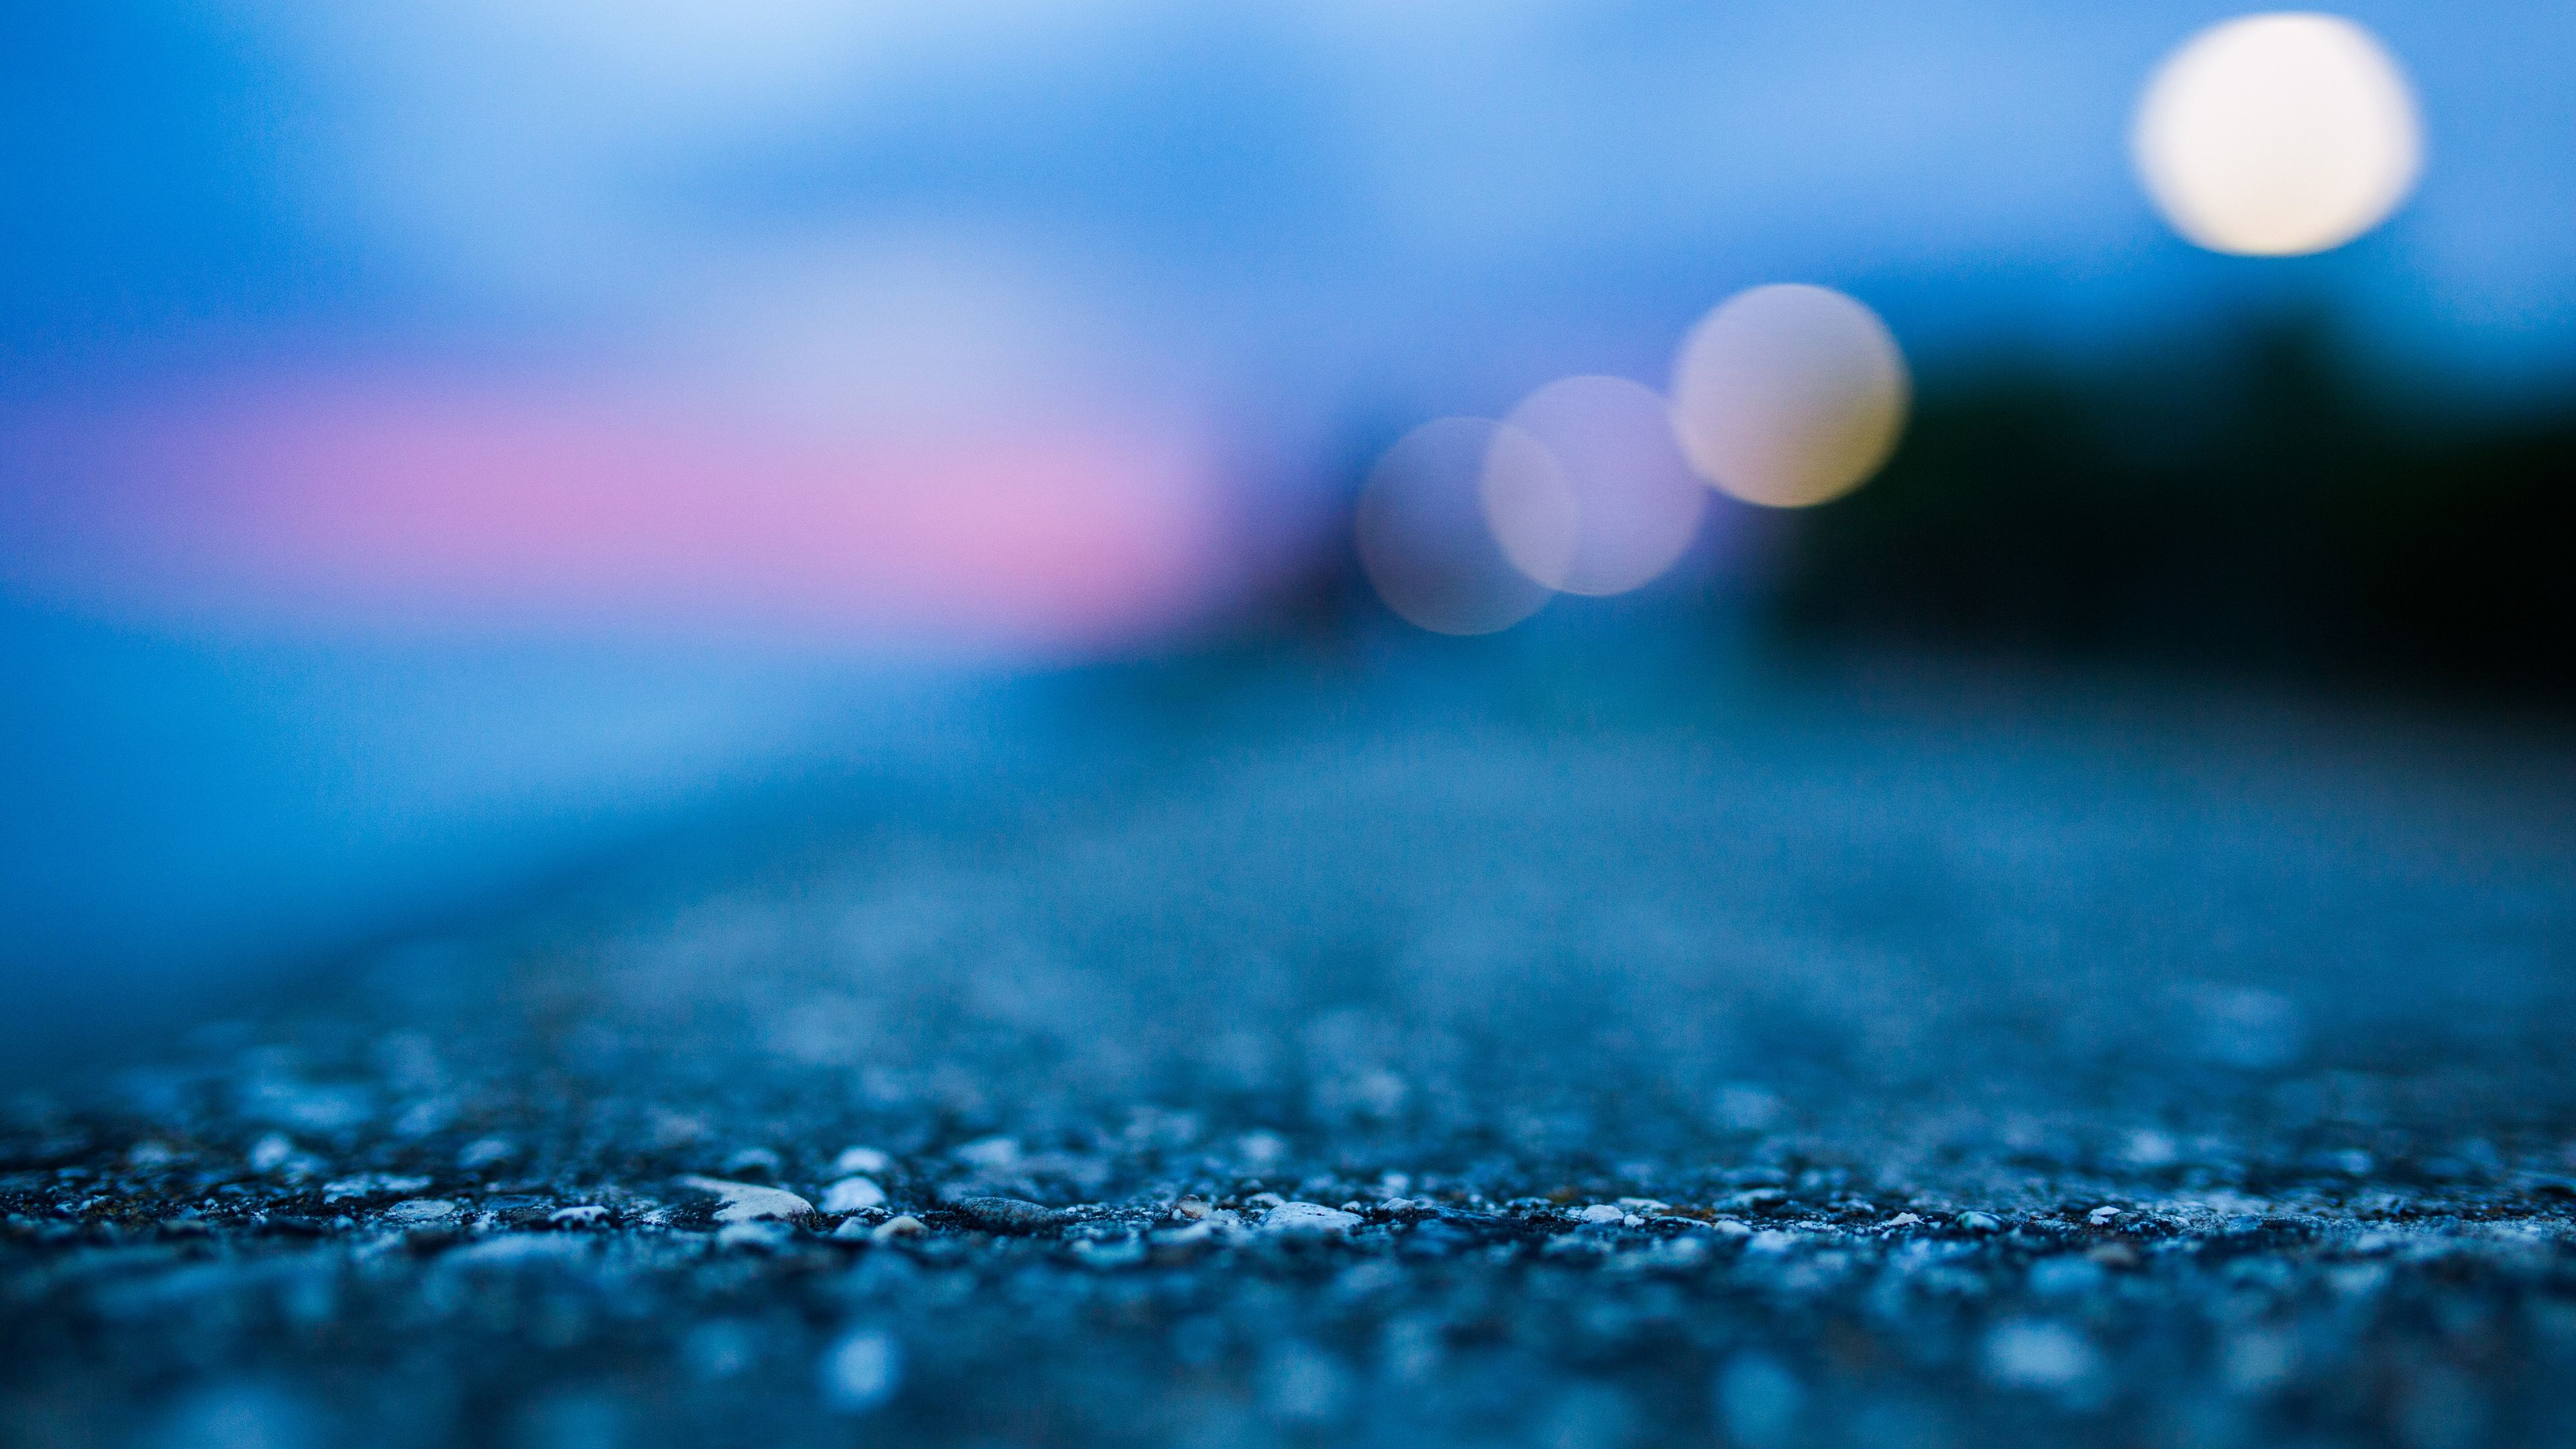 Abstract Blue Concrete Ground Macro macro wallpapers hd 3840x2160